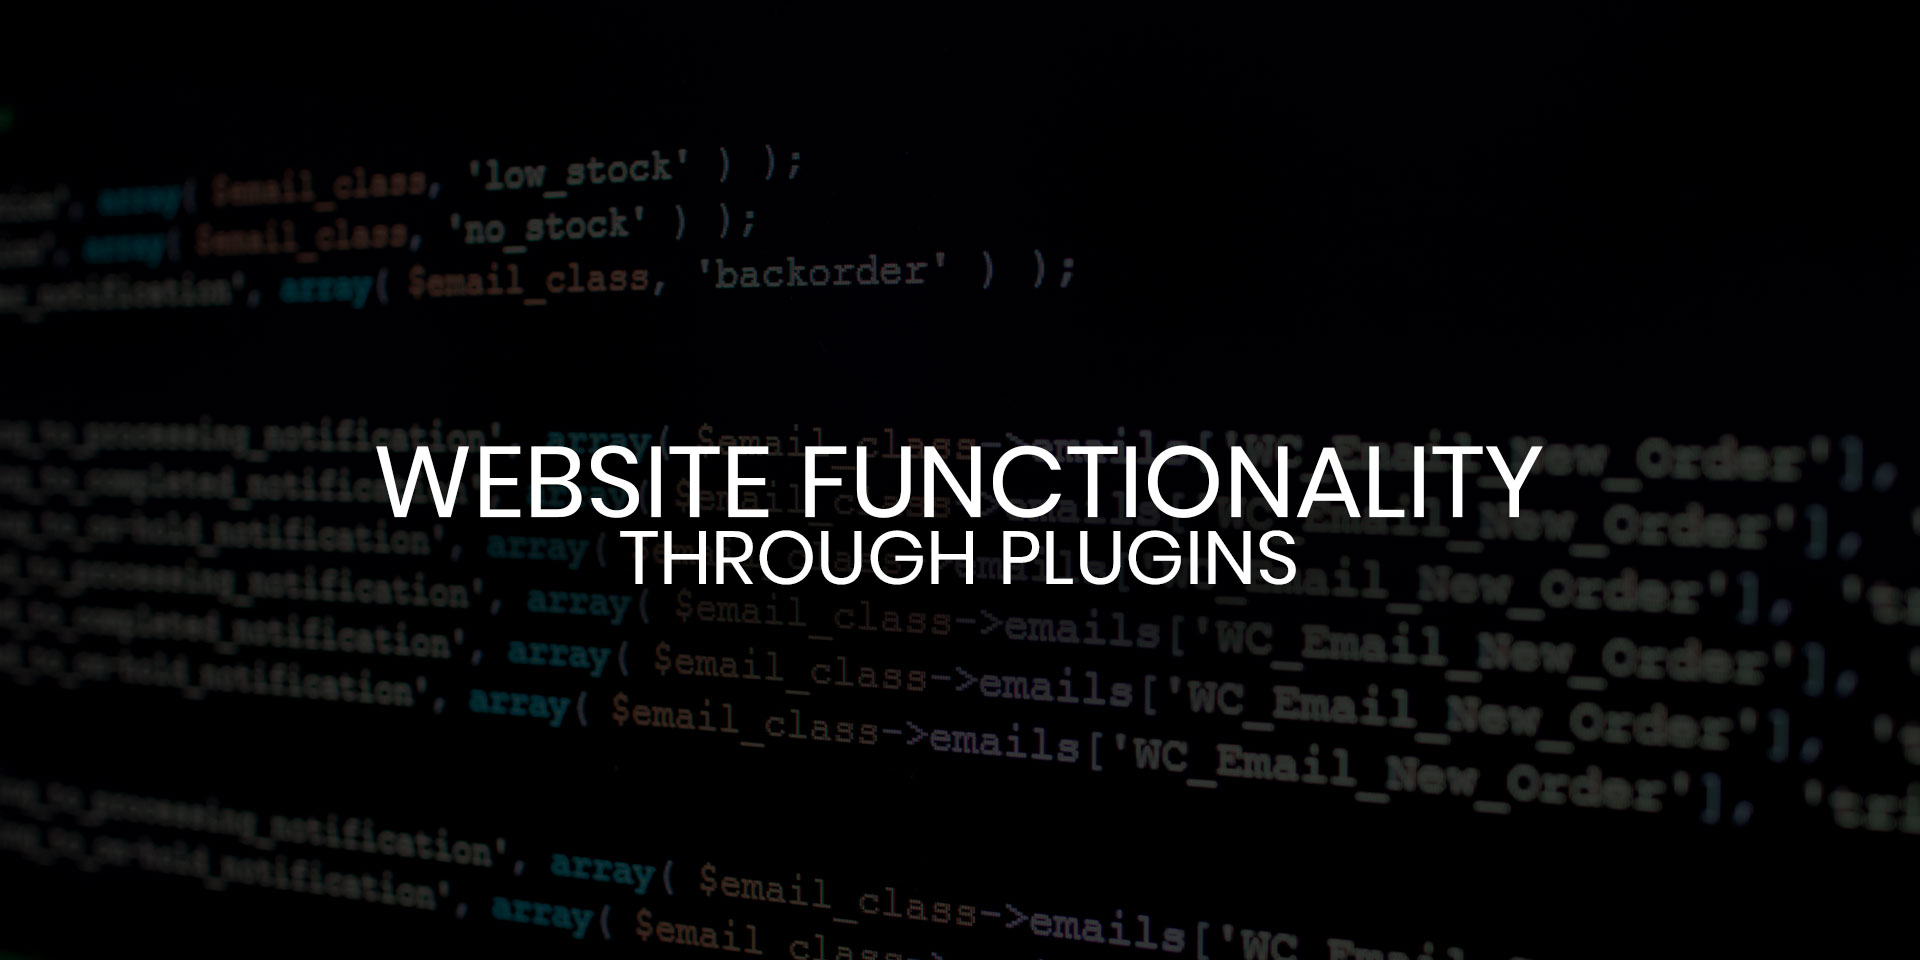 Website Functionality Through Plugins